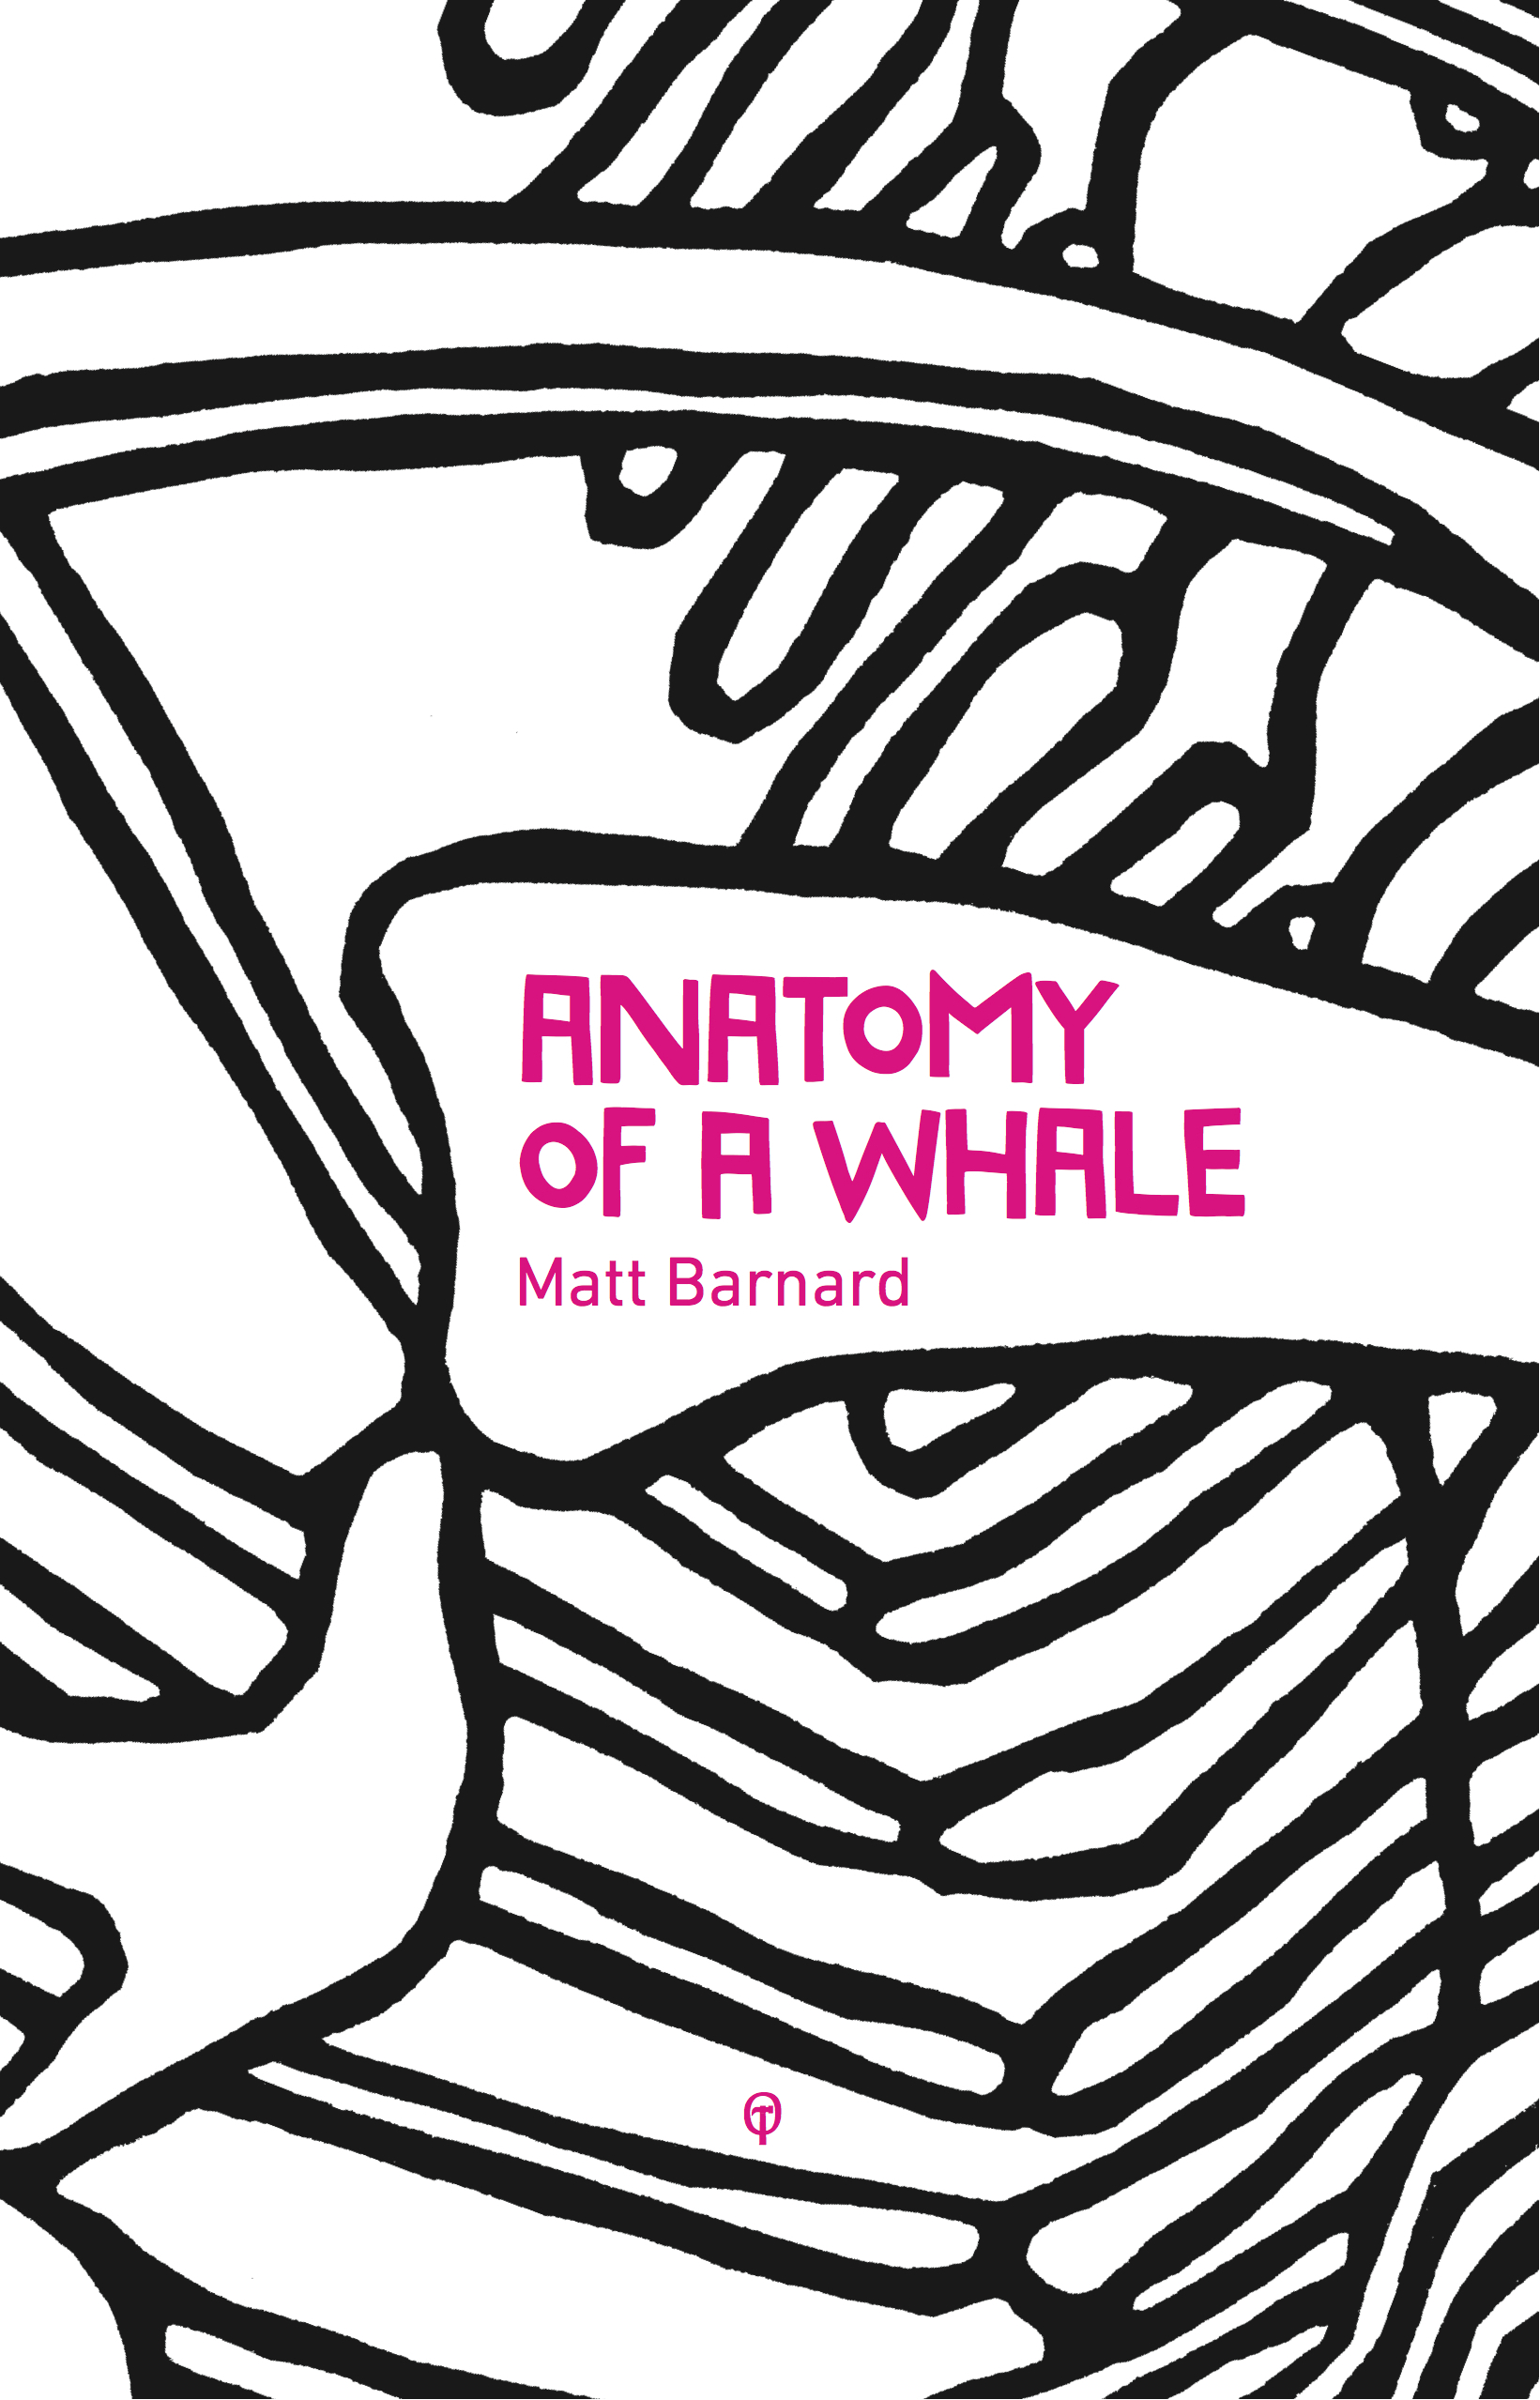 Anatomy of a Whale—by Matt Barnard | The Onslaught Press